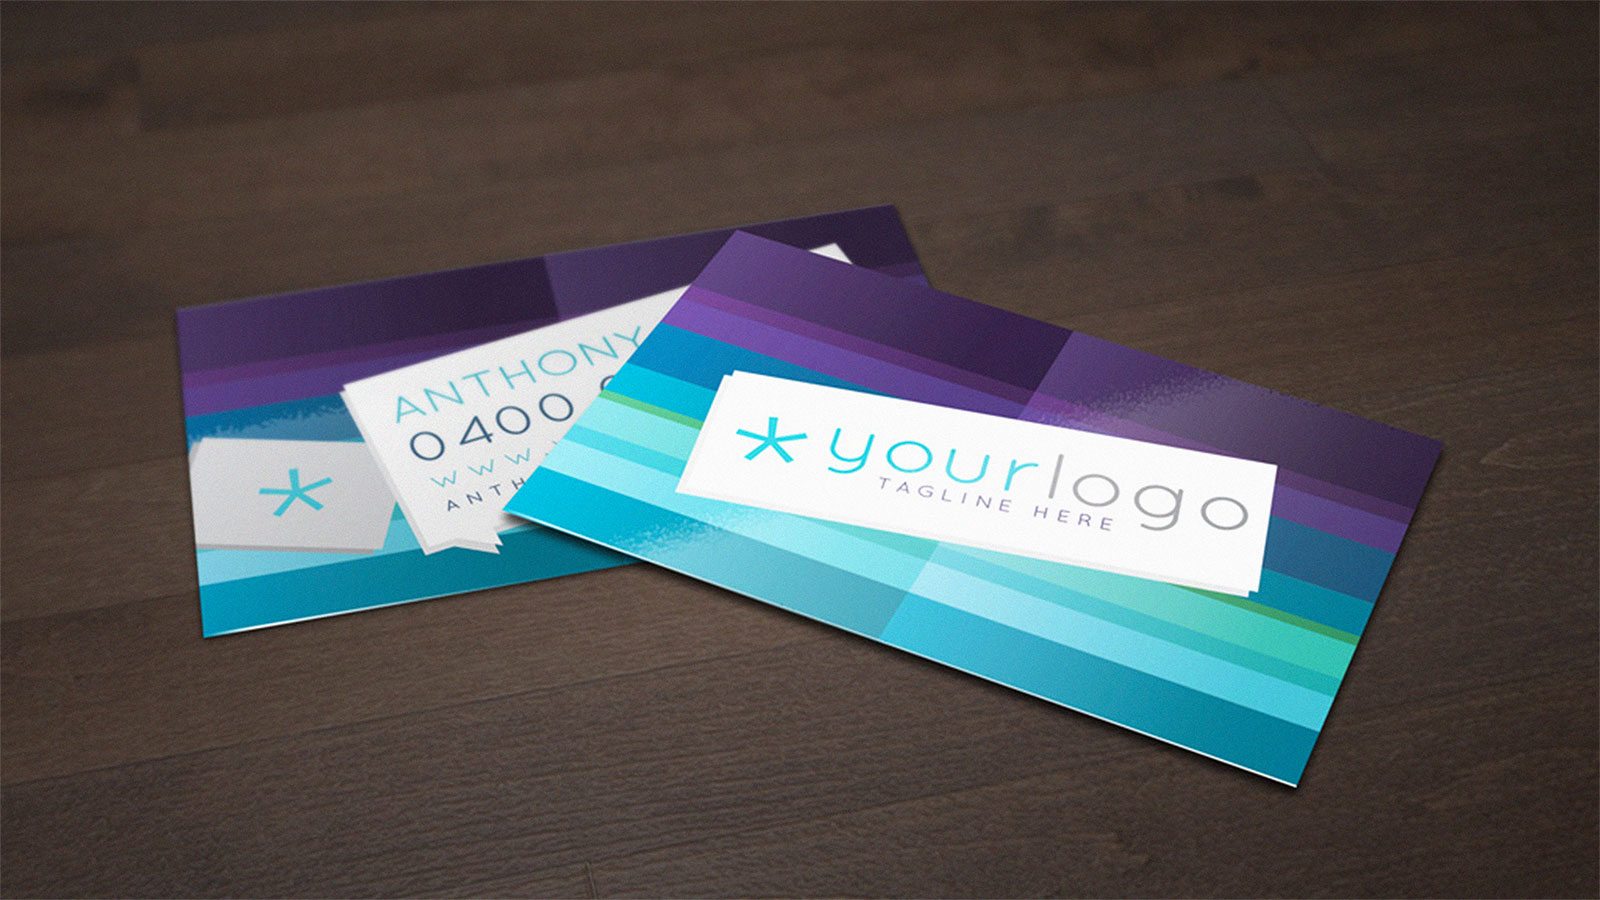 18 of the best free business card templates | Creative Bloq